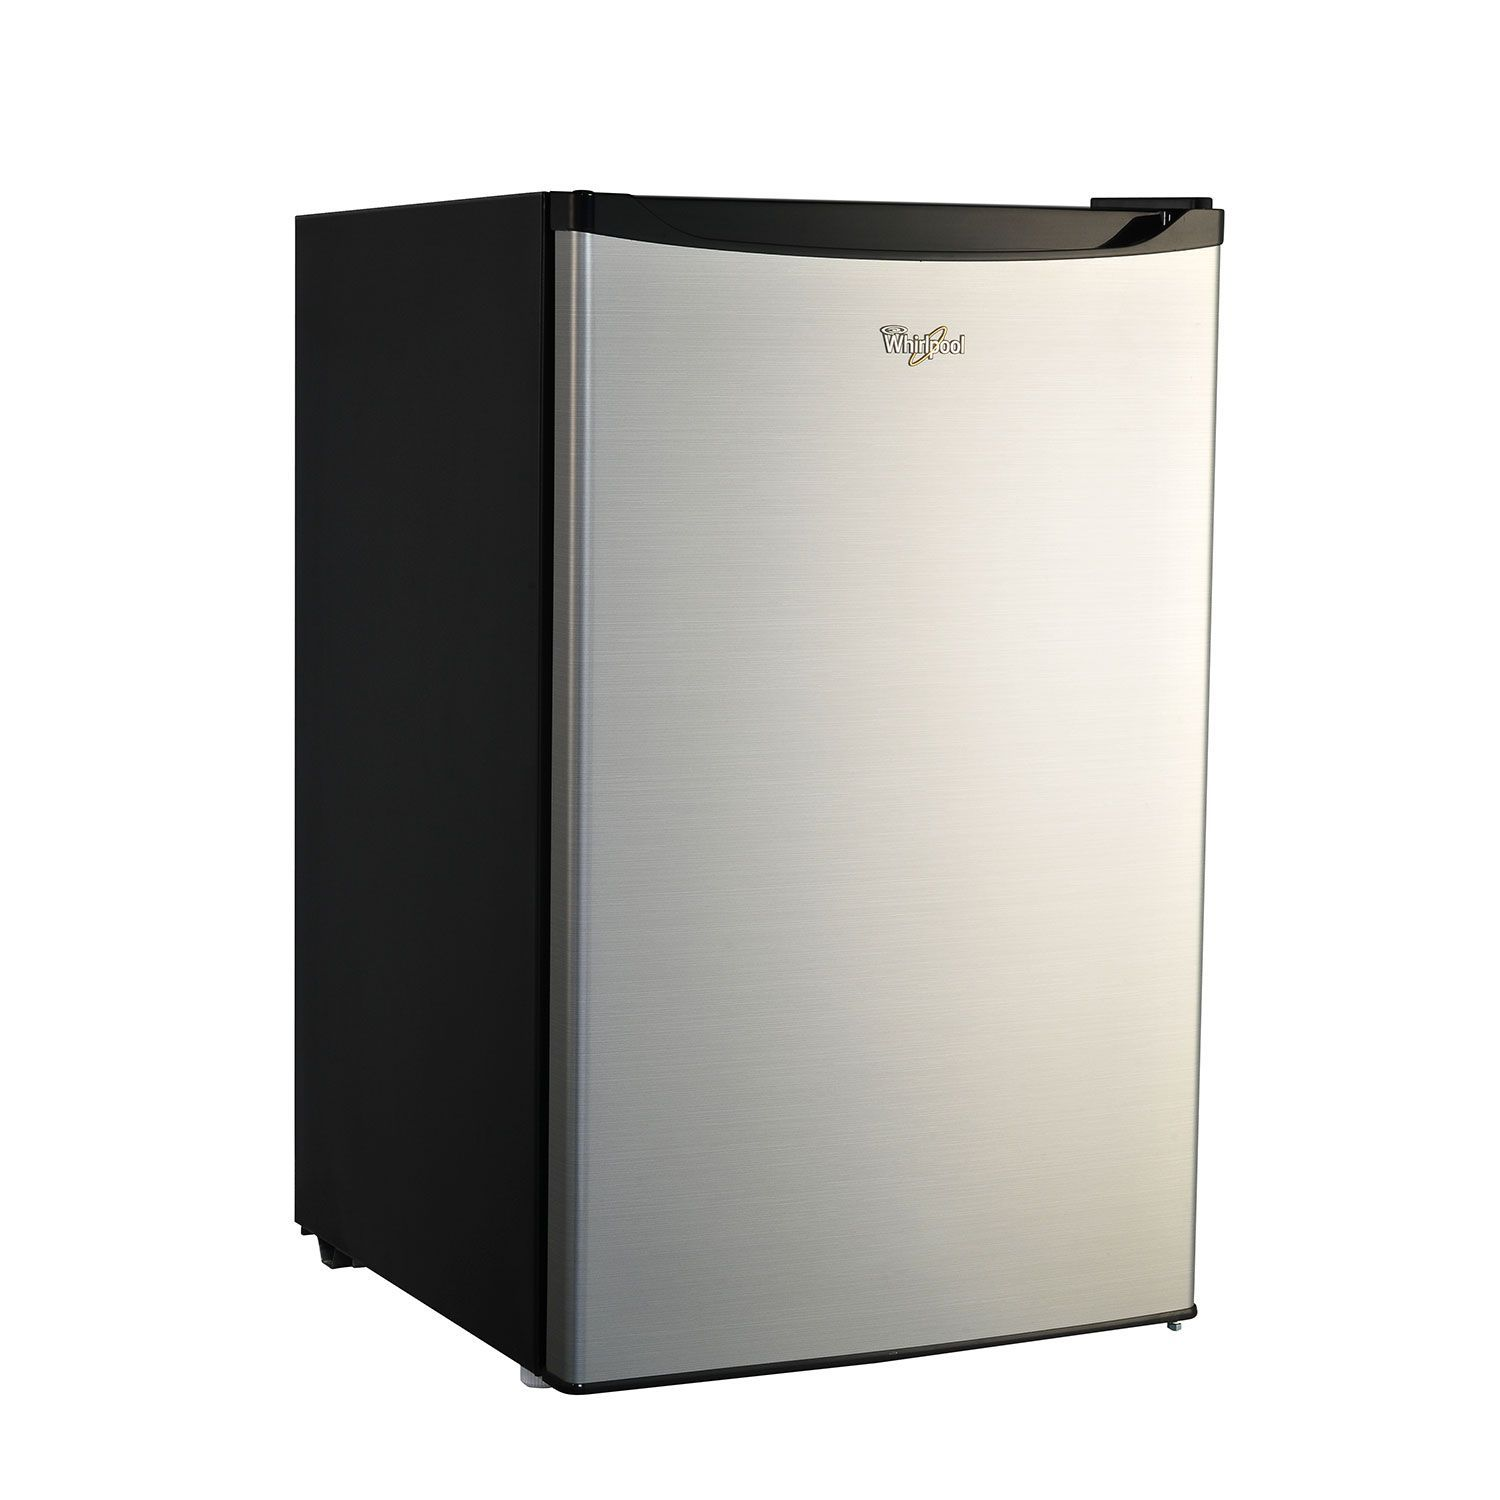 Whirlpool 4 3 Cu Ft Compact Refrigerator New House